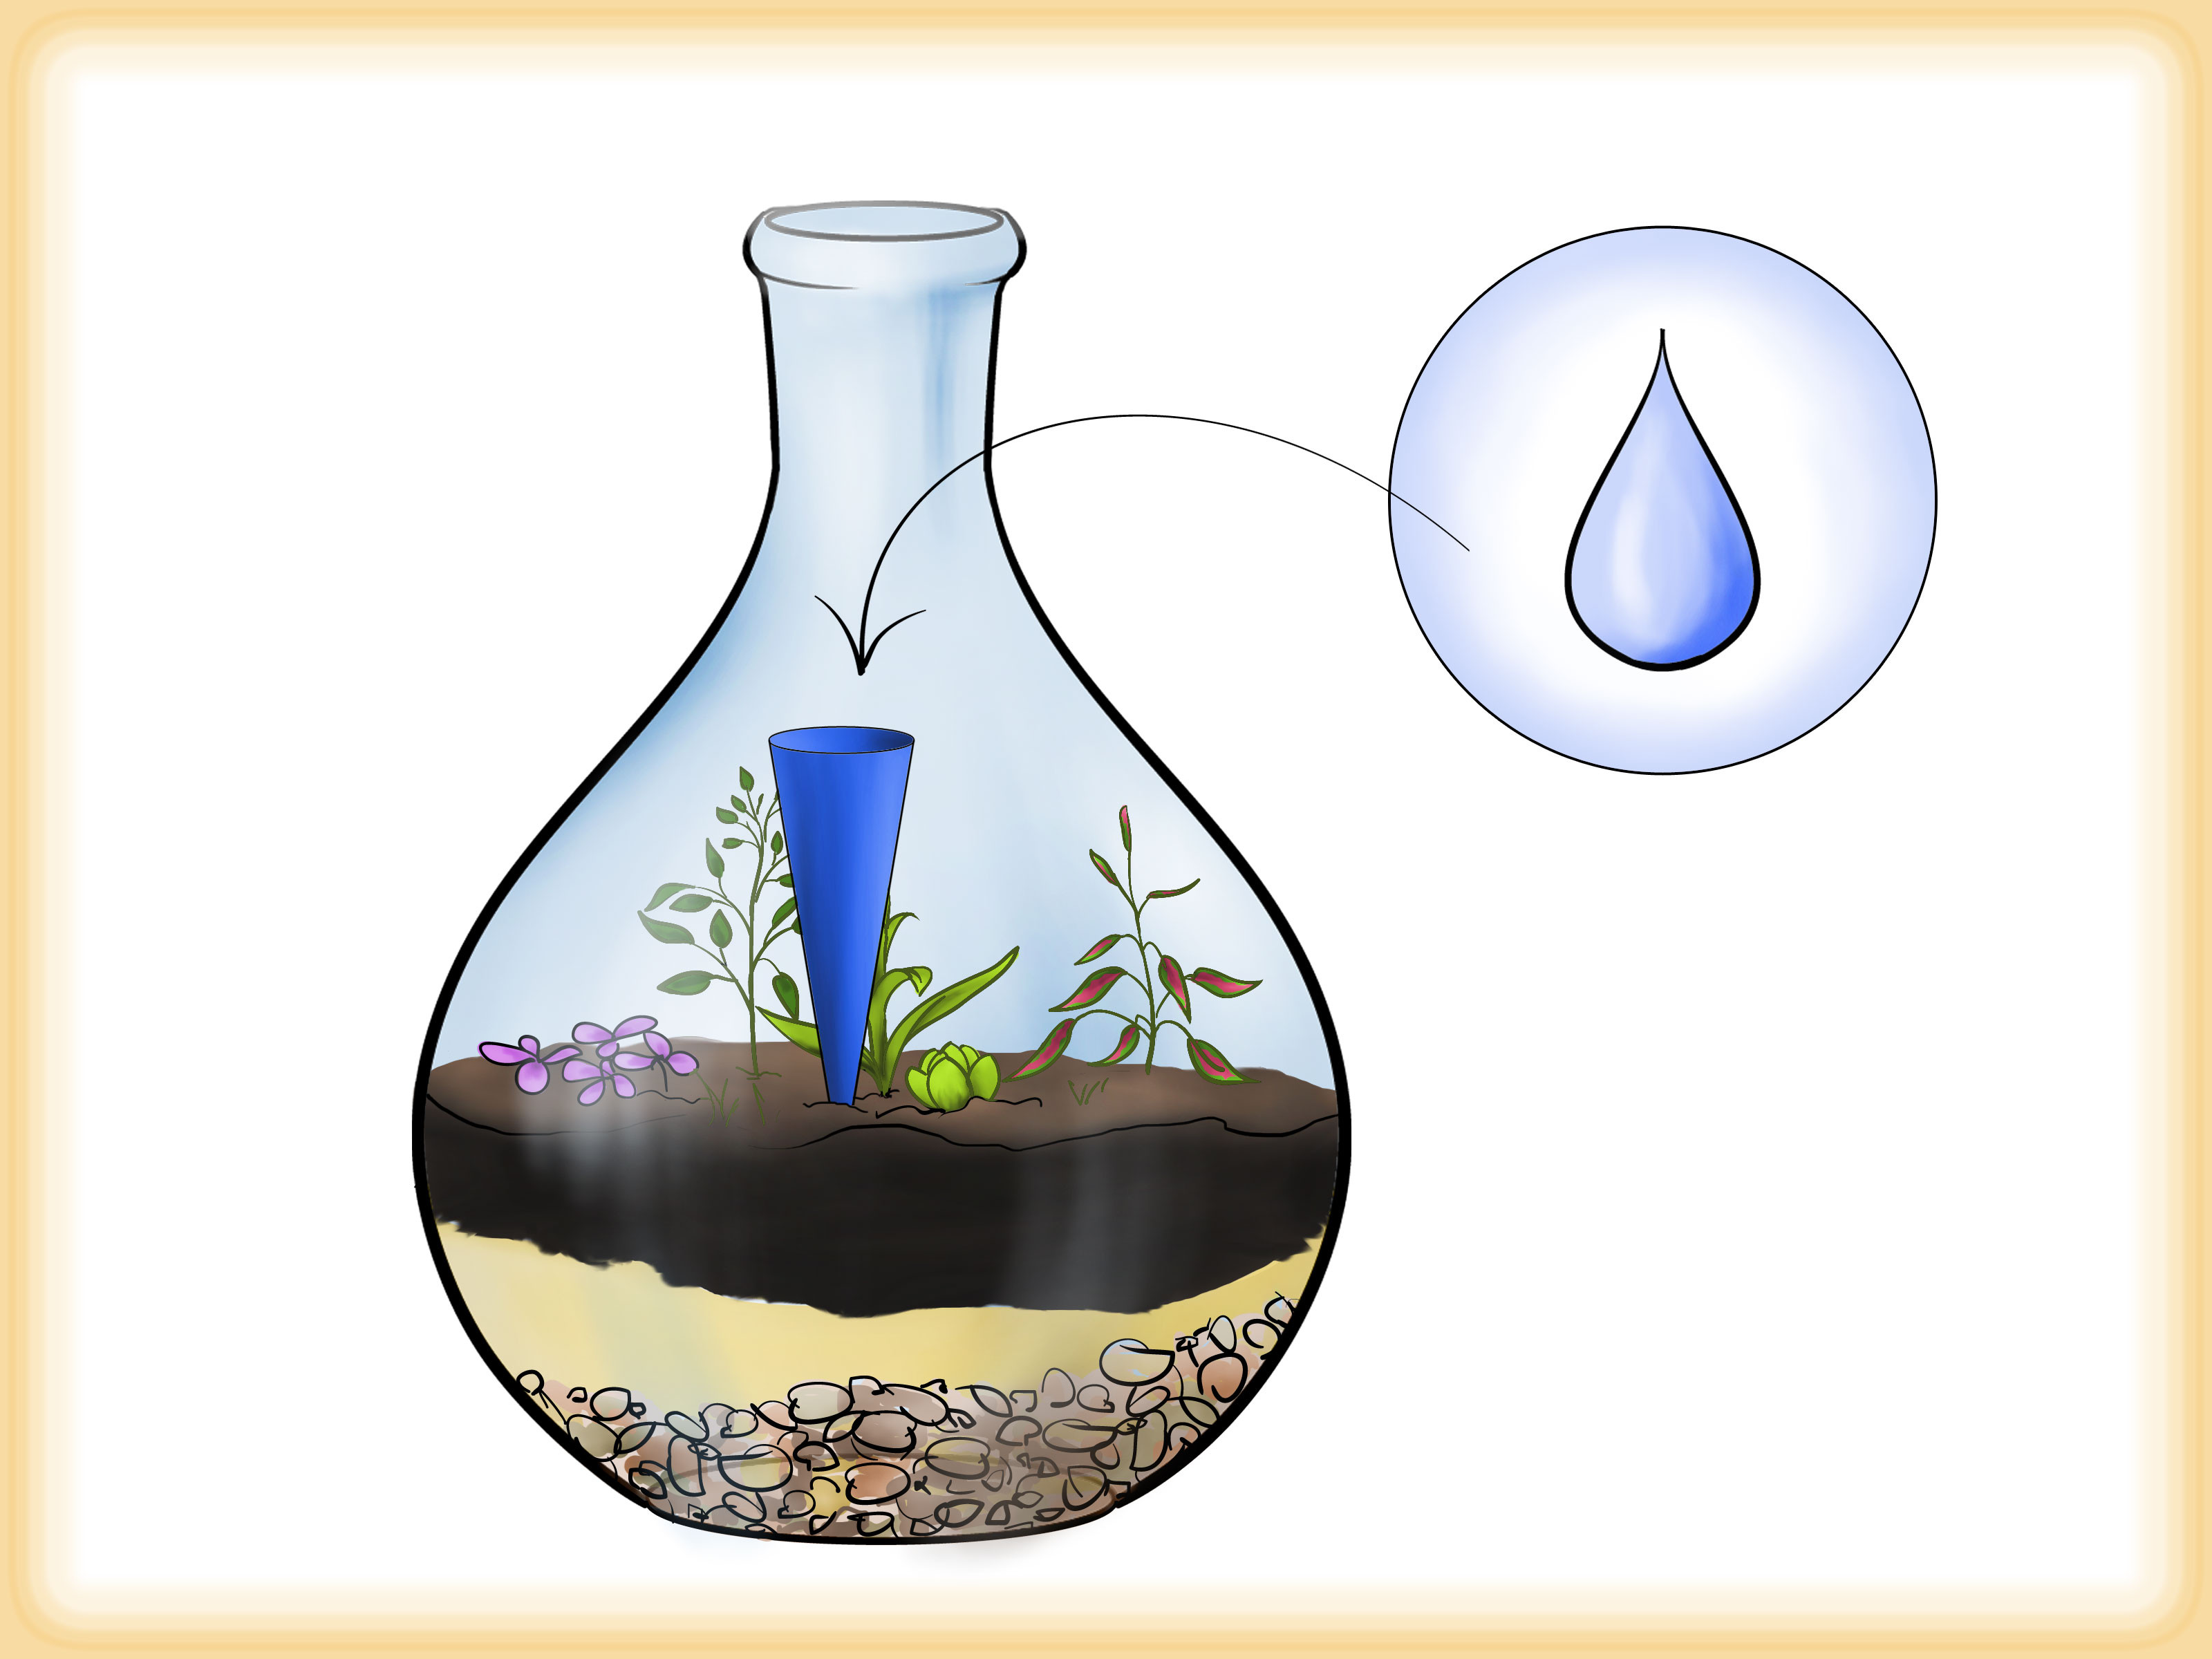 Large Sea Glass Vases Of How to Grow A Garden In A Bottle 6 Steps with Pictures with Grow A Garden In A Bottle Step 6